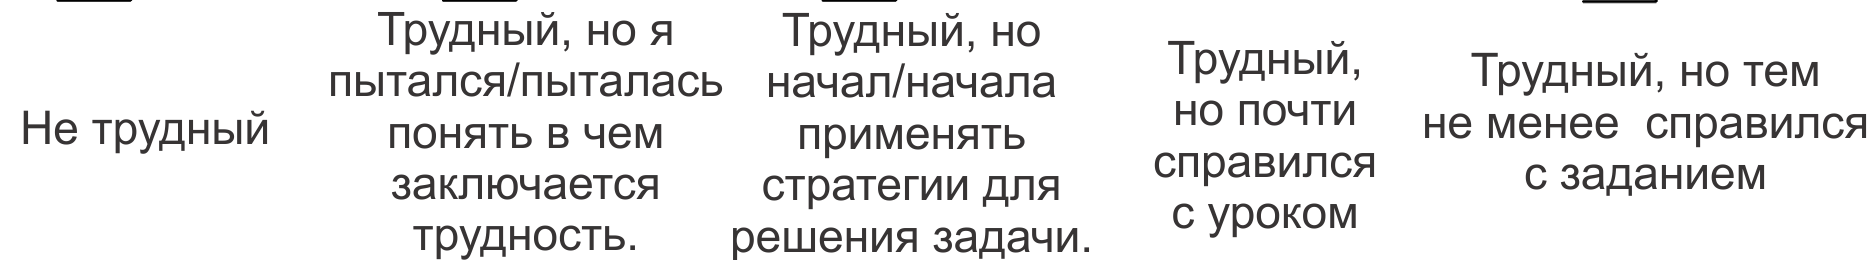 D:\Documents and Settings\User\Local Settings\Temporary Internet Files\Content.Word\Обратная связь по уроку.png